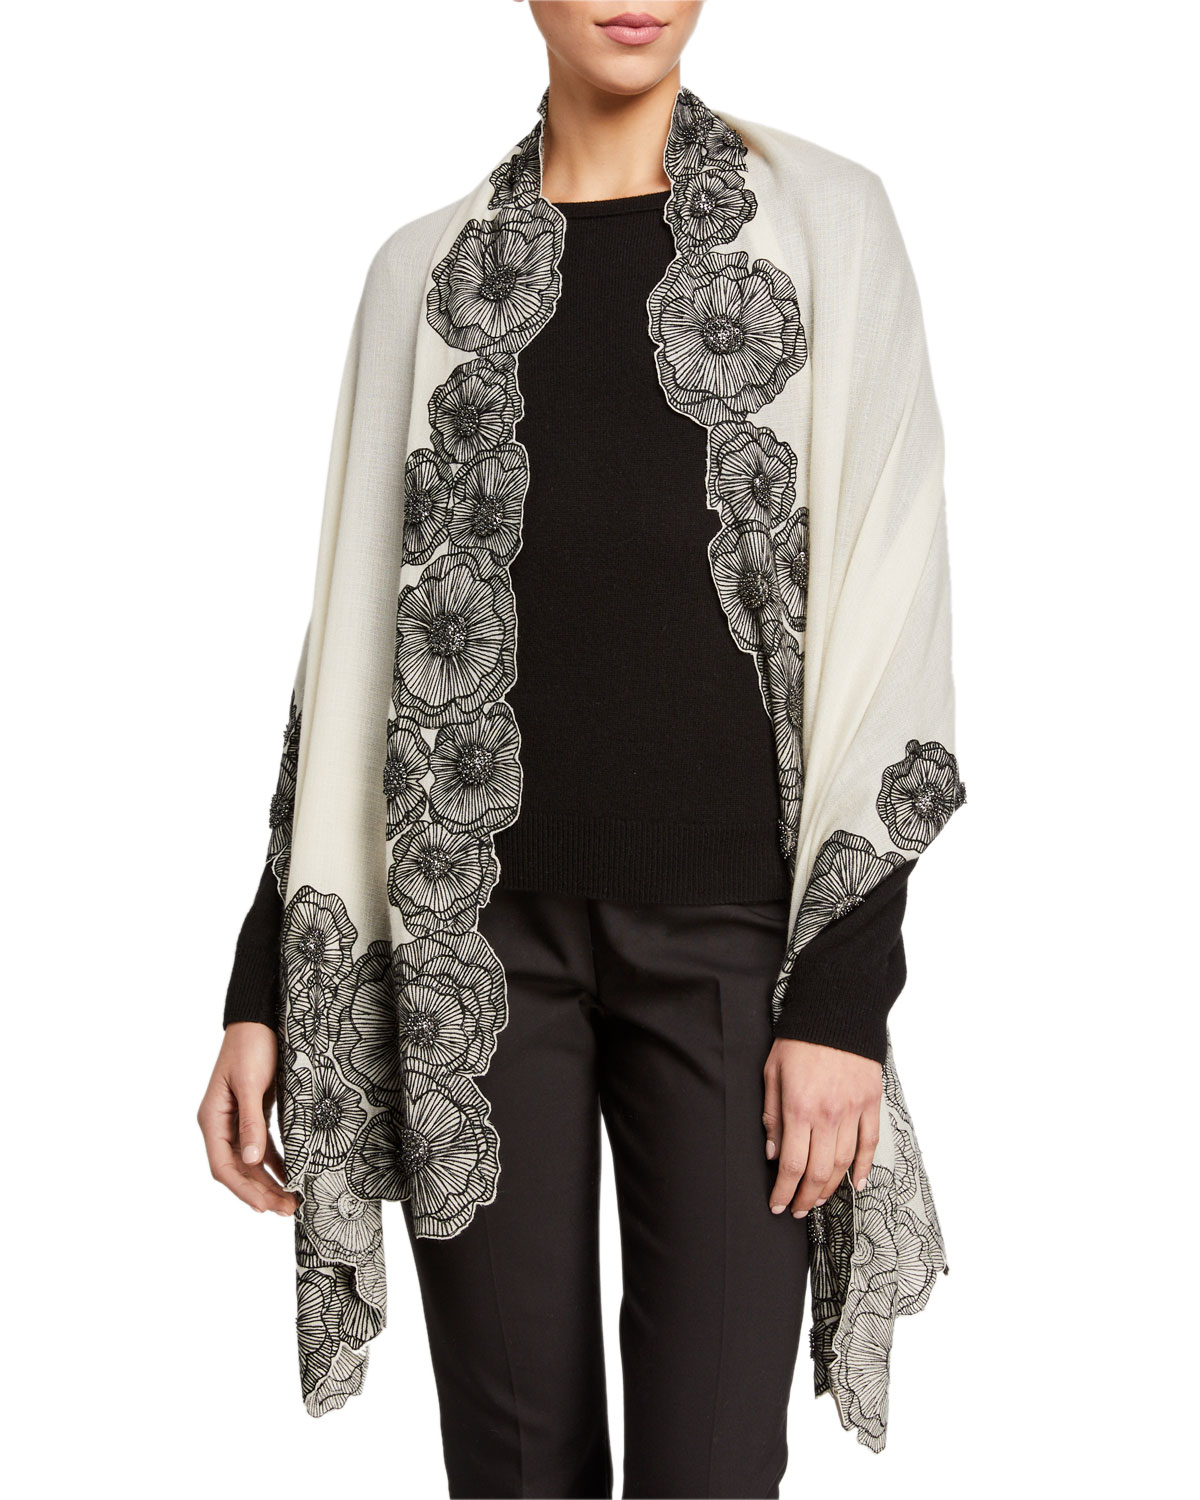 K Janavi Floral Cut Border Cashmere Scarf In Ivory